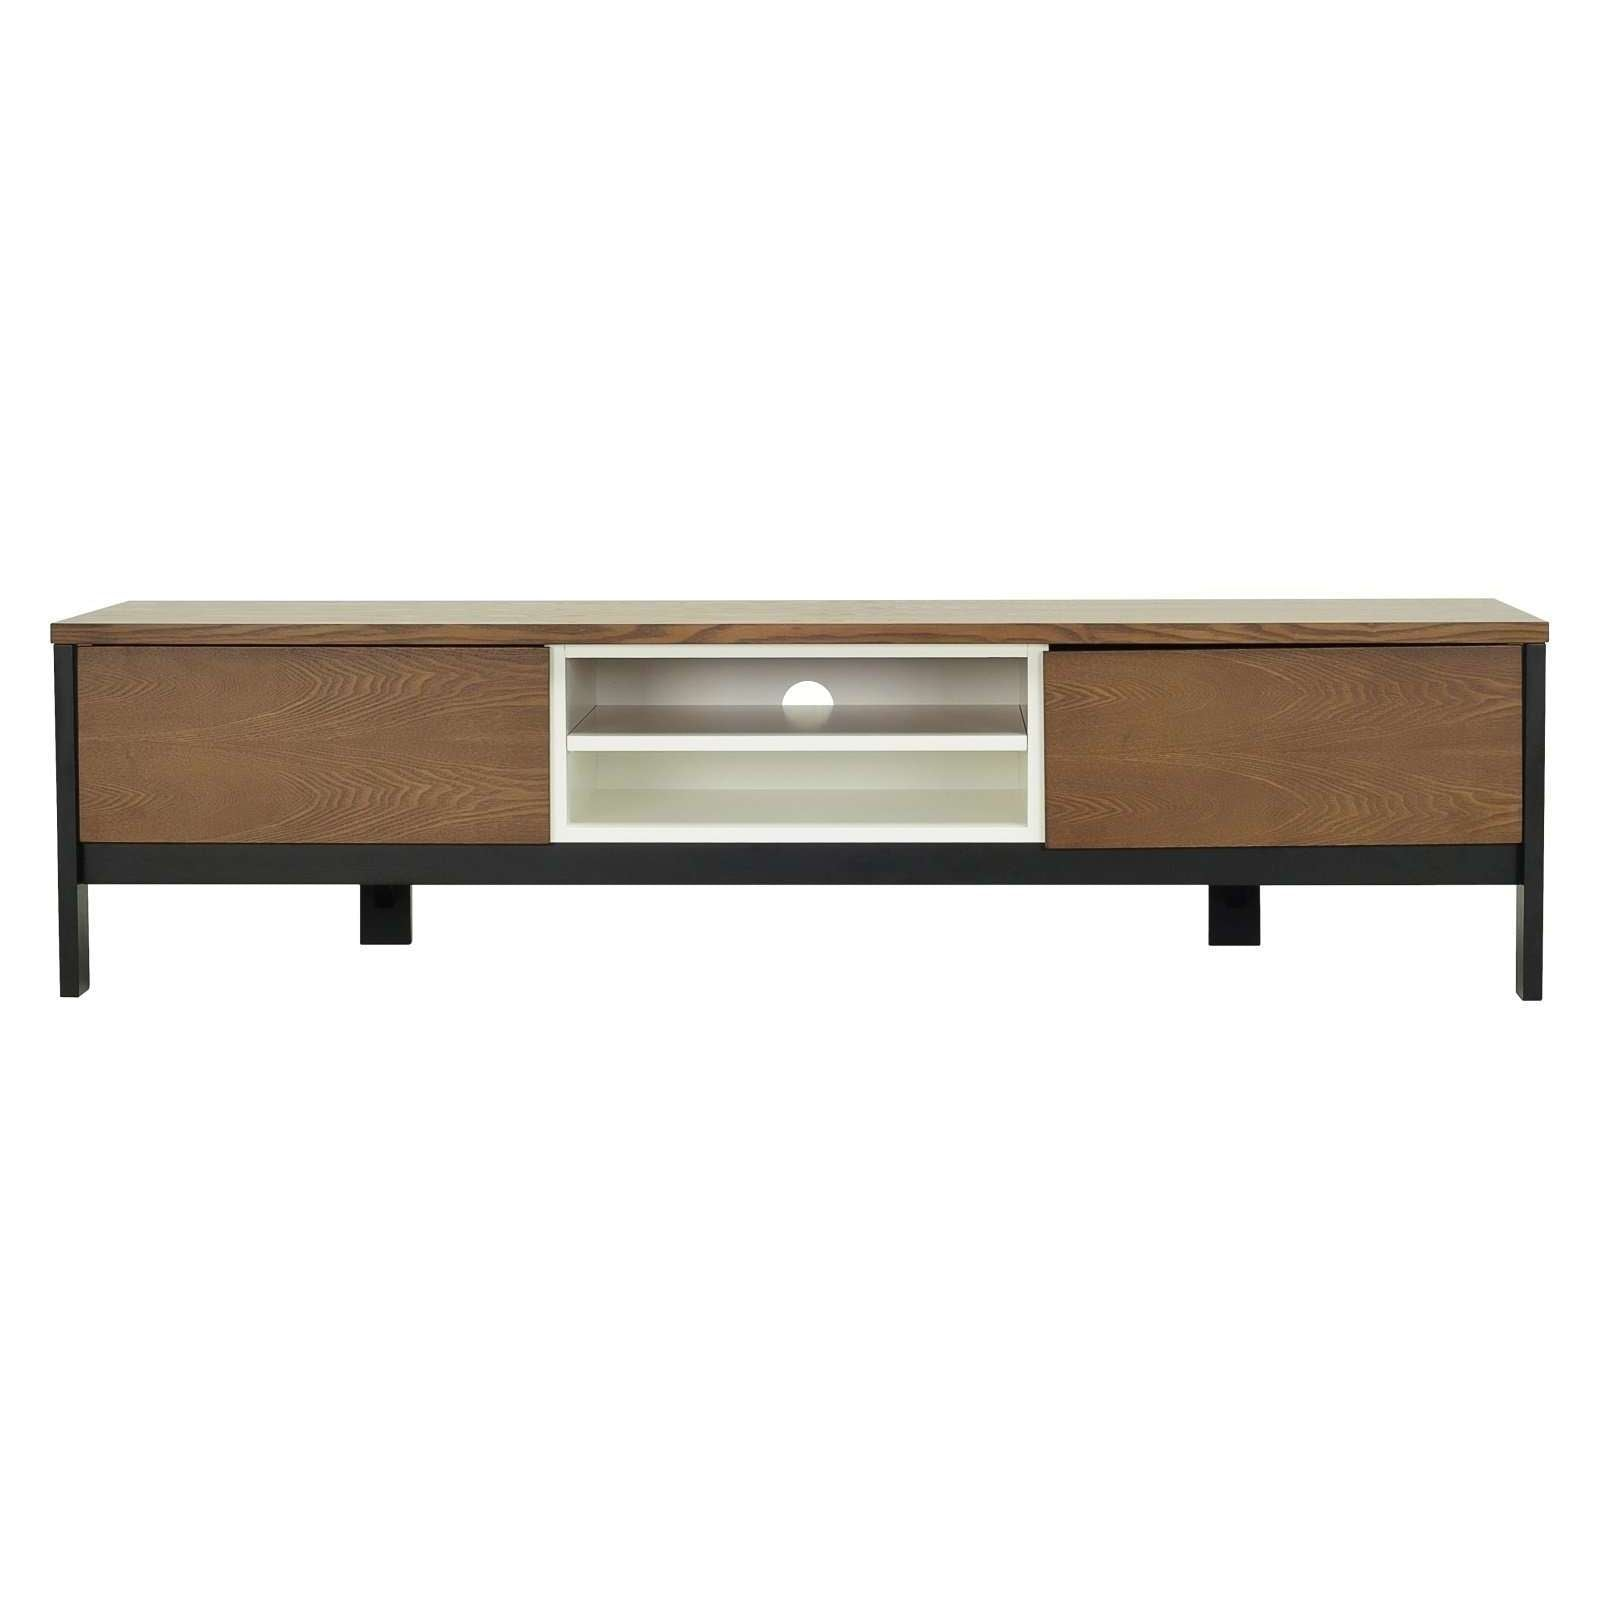 JARVY TV Cabinet On Black Colour Leg, White Lacquered Body And Cocoa Colour Top And Door